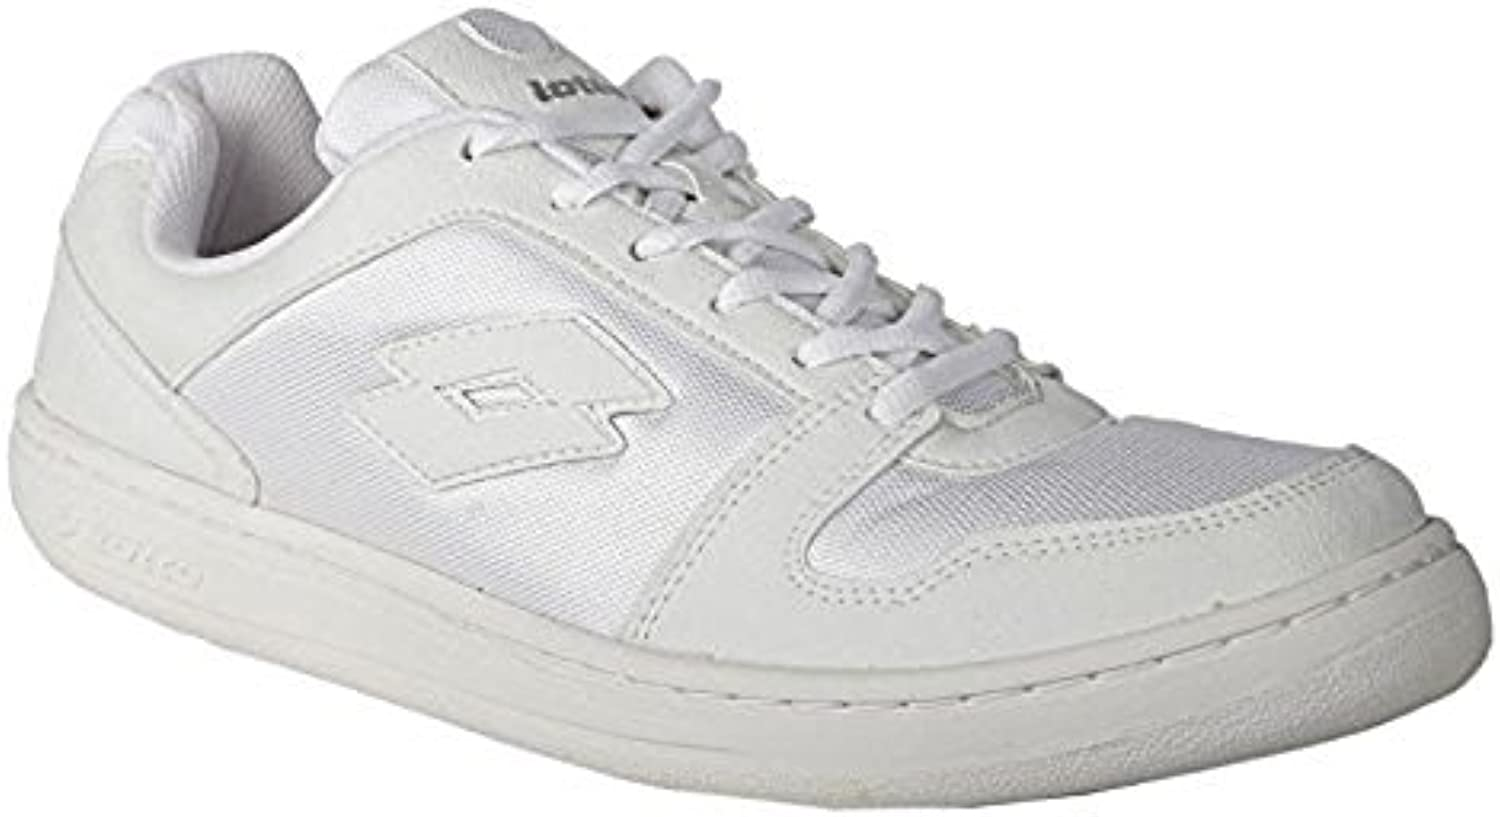 Lotto Men's Ace White Running Shoes   11 UK/India (45 EU)